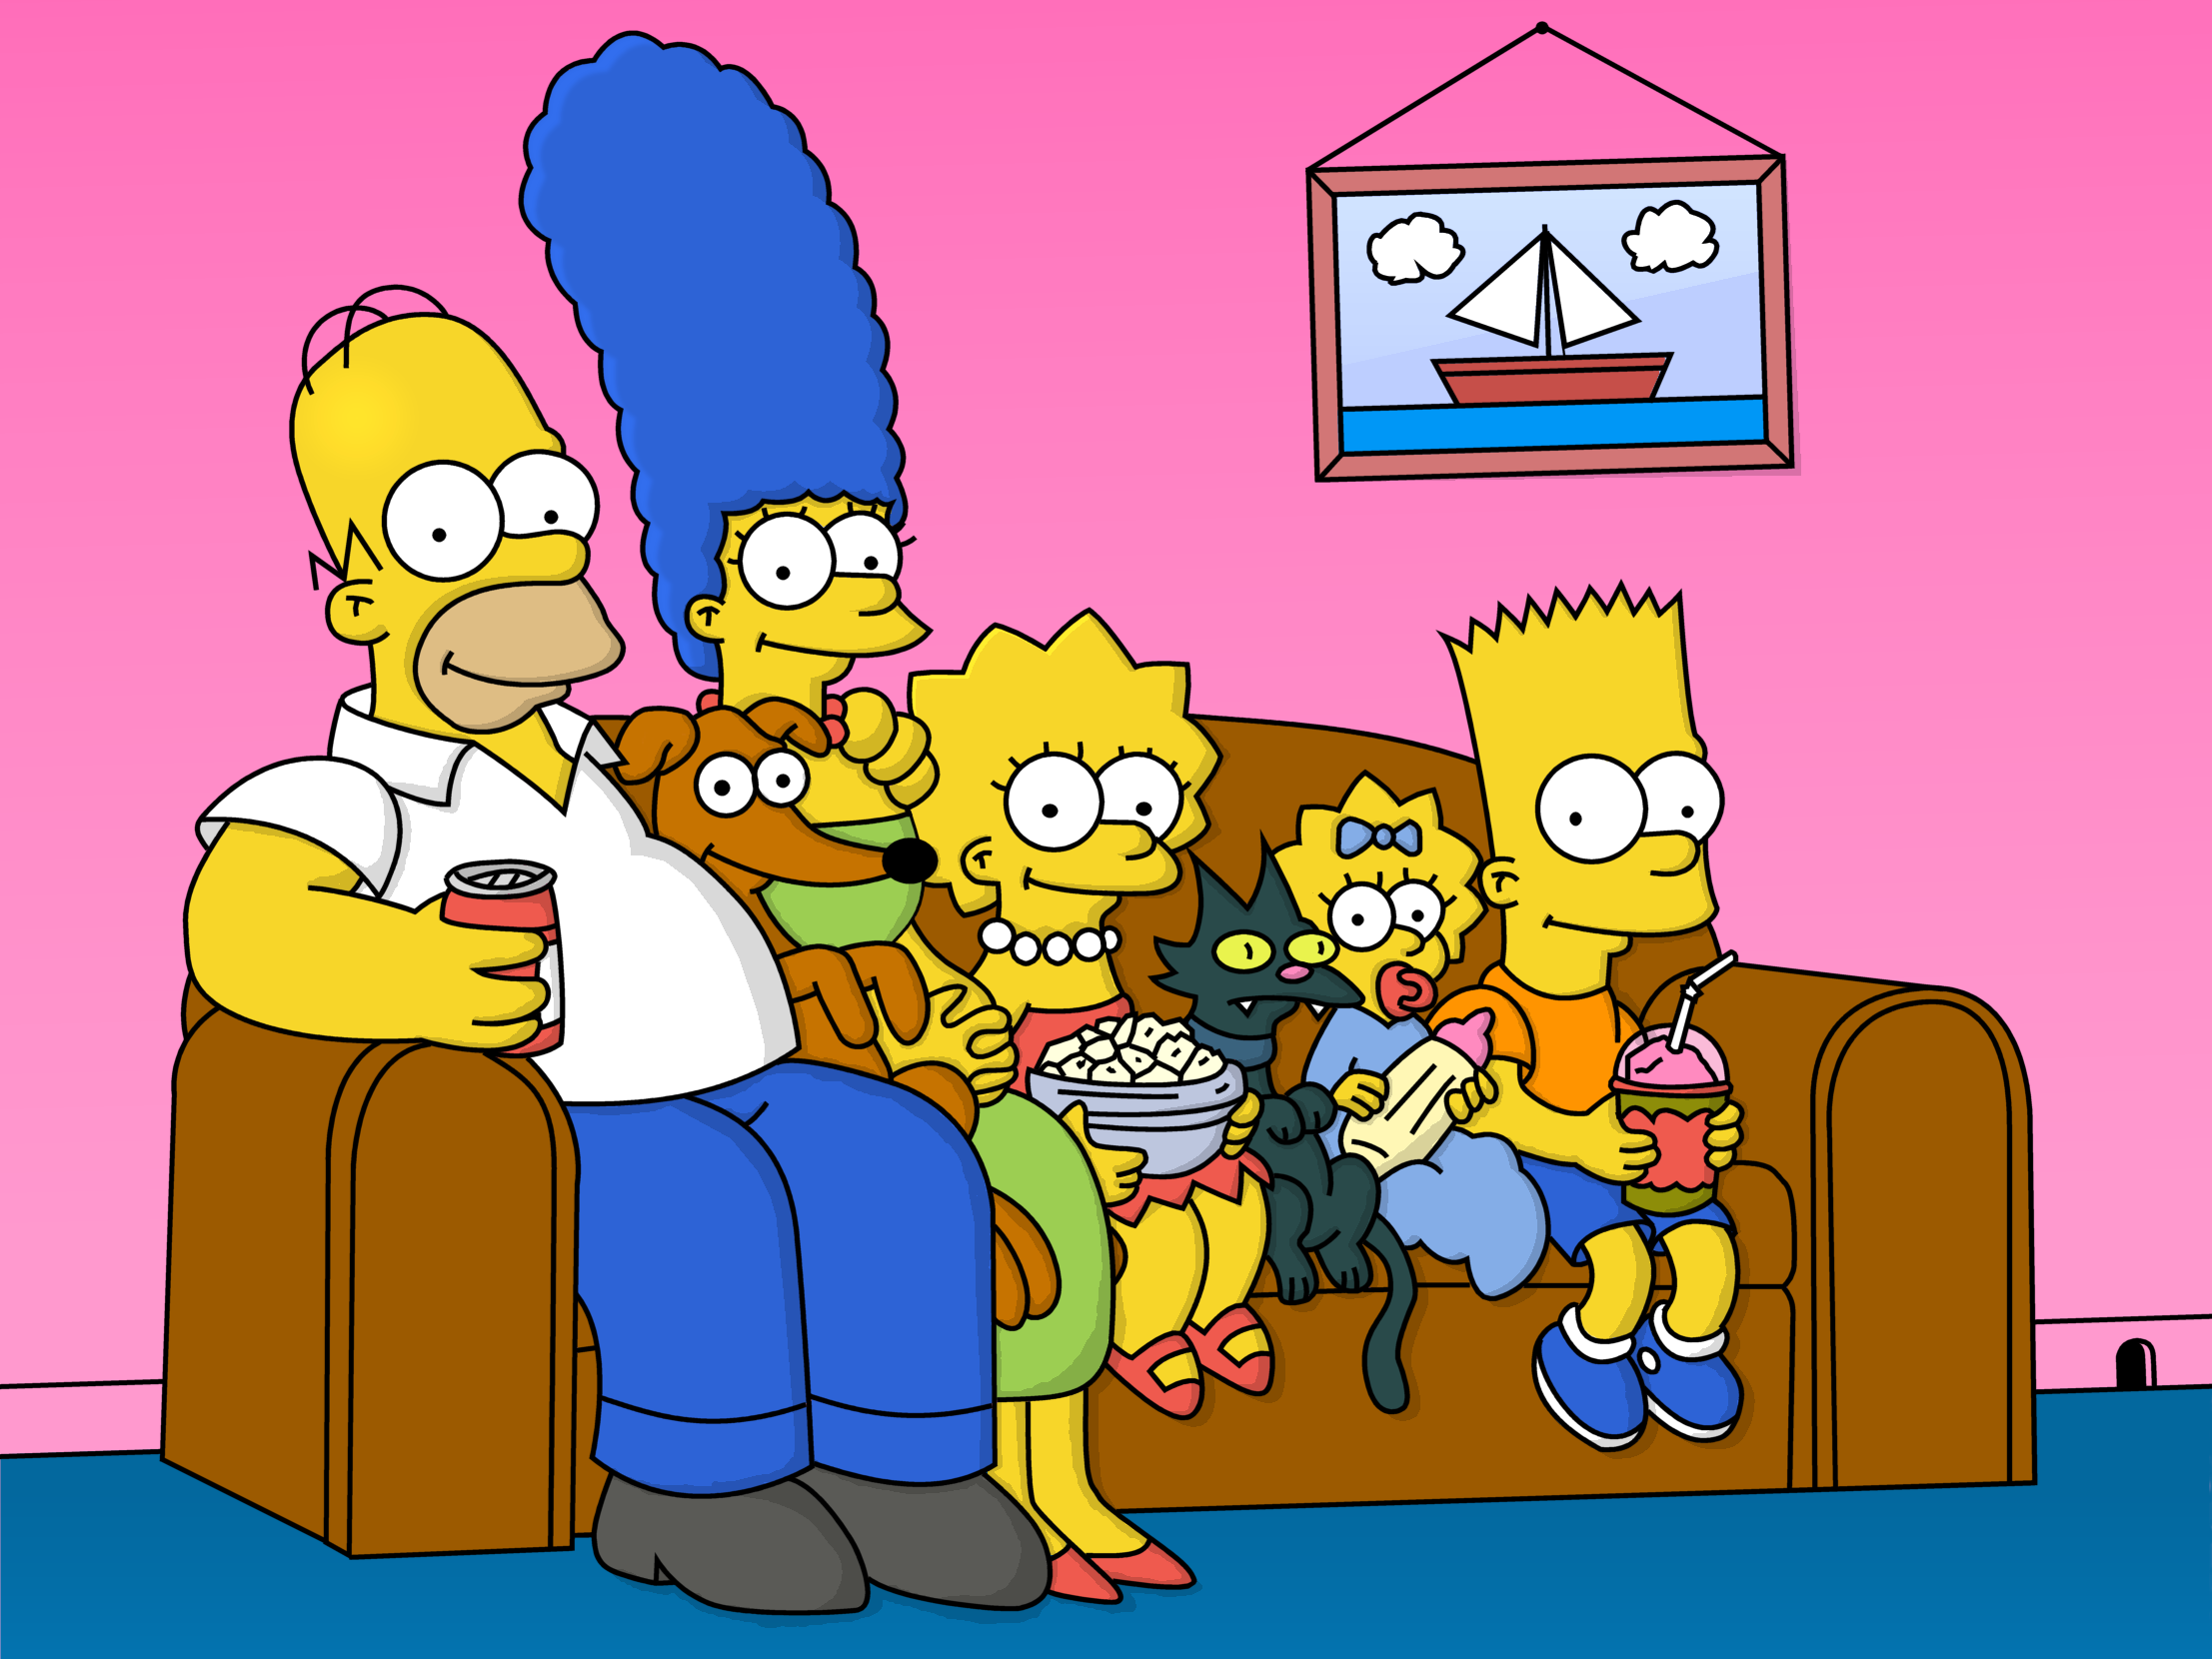 http://www.playbuzz.com/anonymous21/which-of-the-simpsons-are-you